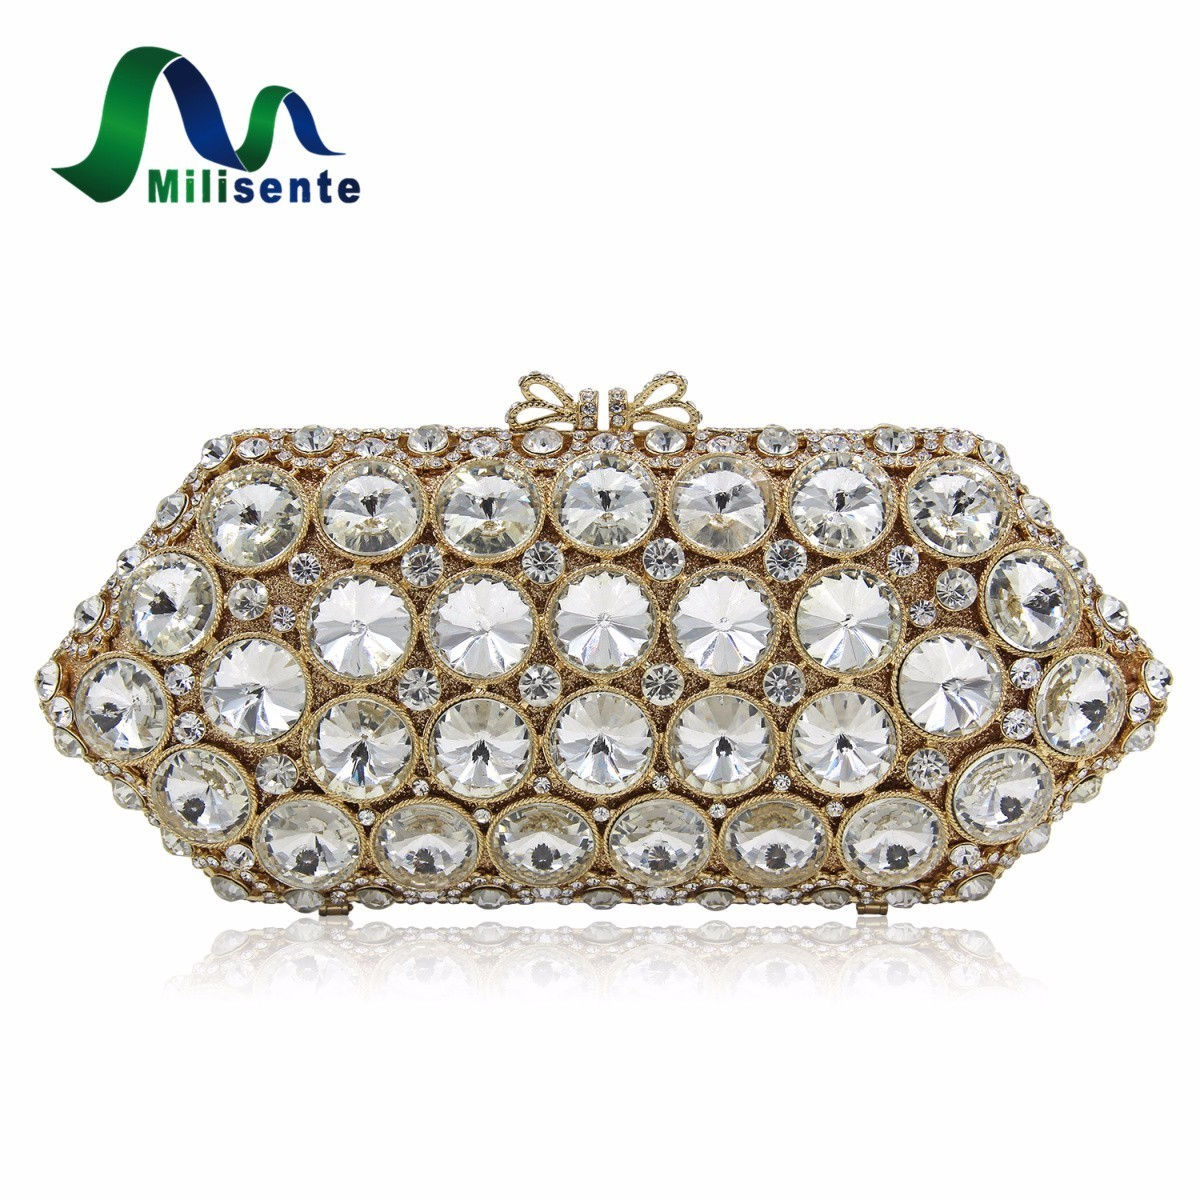 Milisente Women Crystal Bag White Stone Wedding Party Clutch Bags Shoulder Long Chain Handbag Gold milisente high quality luxury crystal evening bag women wedding purses lady party clutch handbag green blue gold white